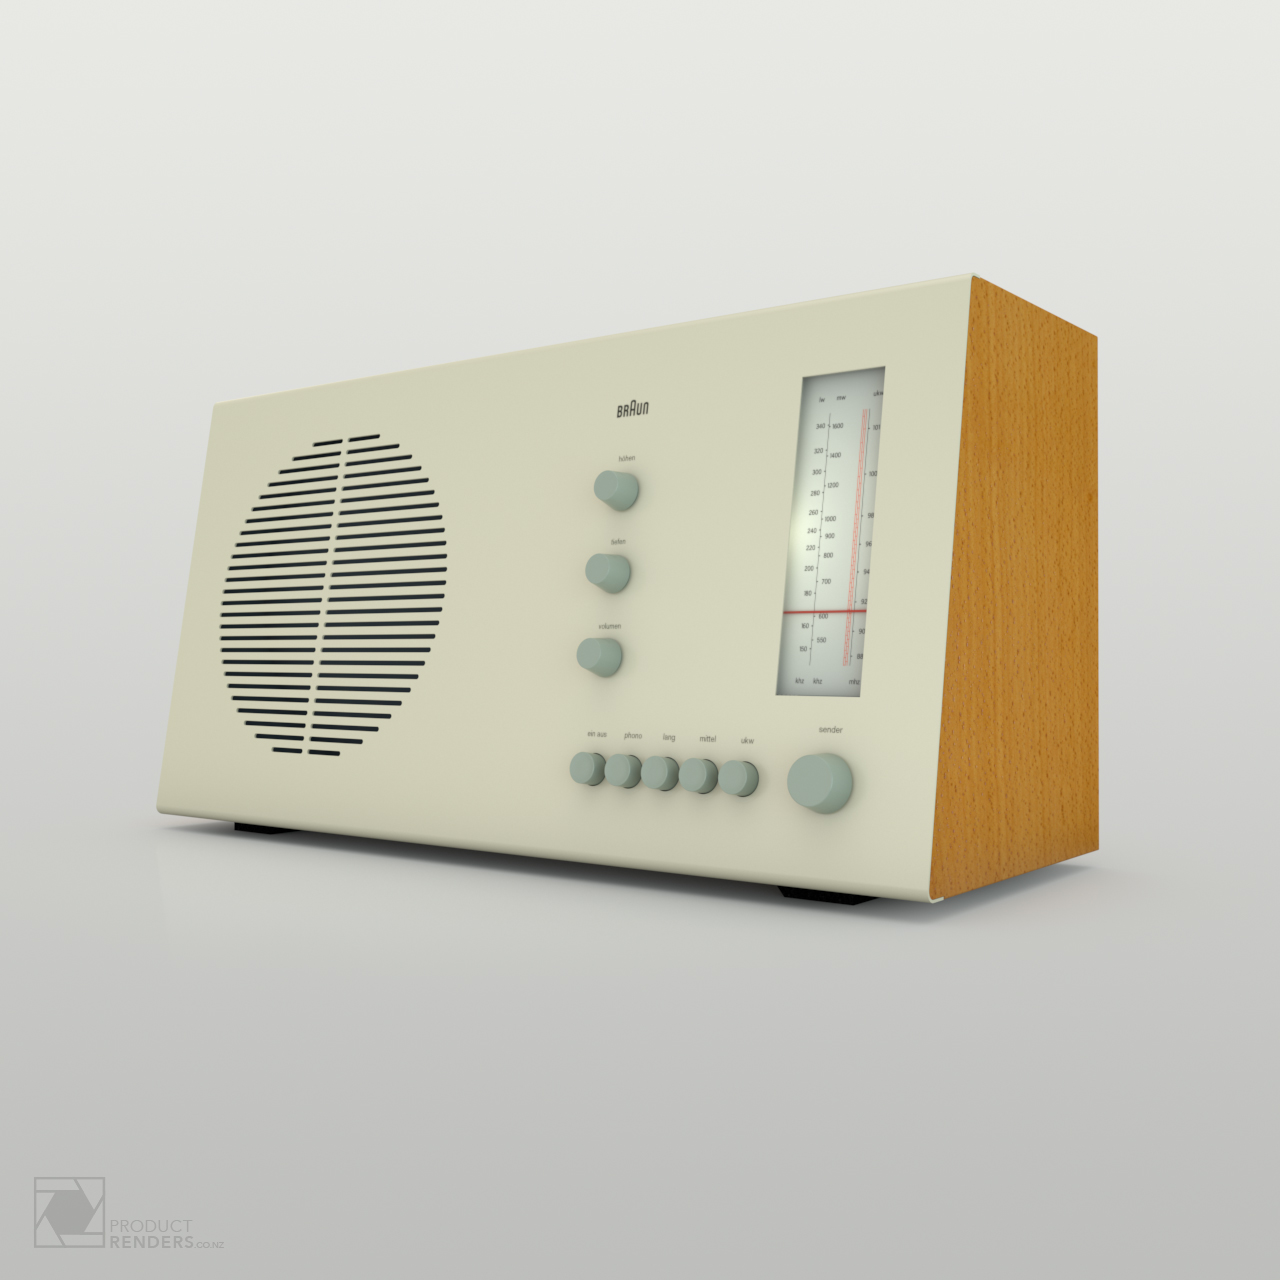 3D product render of a Braun RT20 radio designed by Dieter Rams in 1961 - Right hand side.